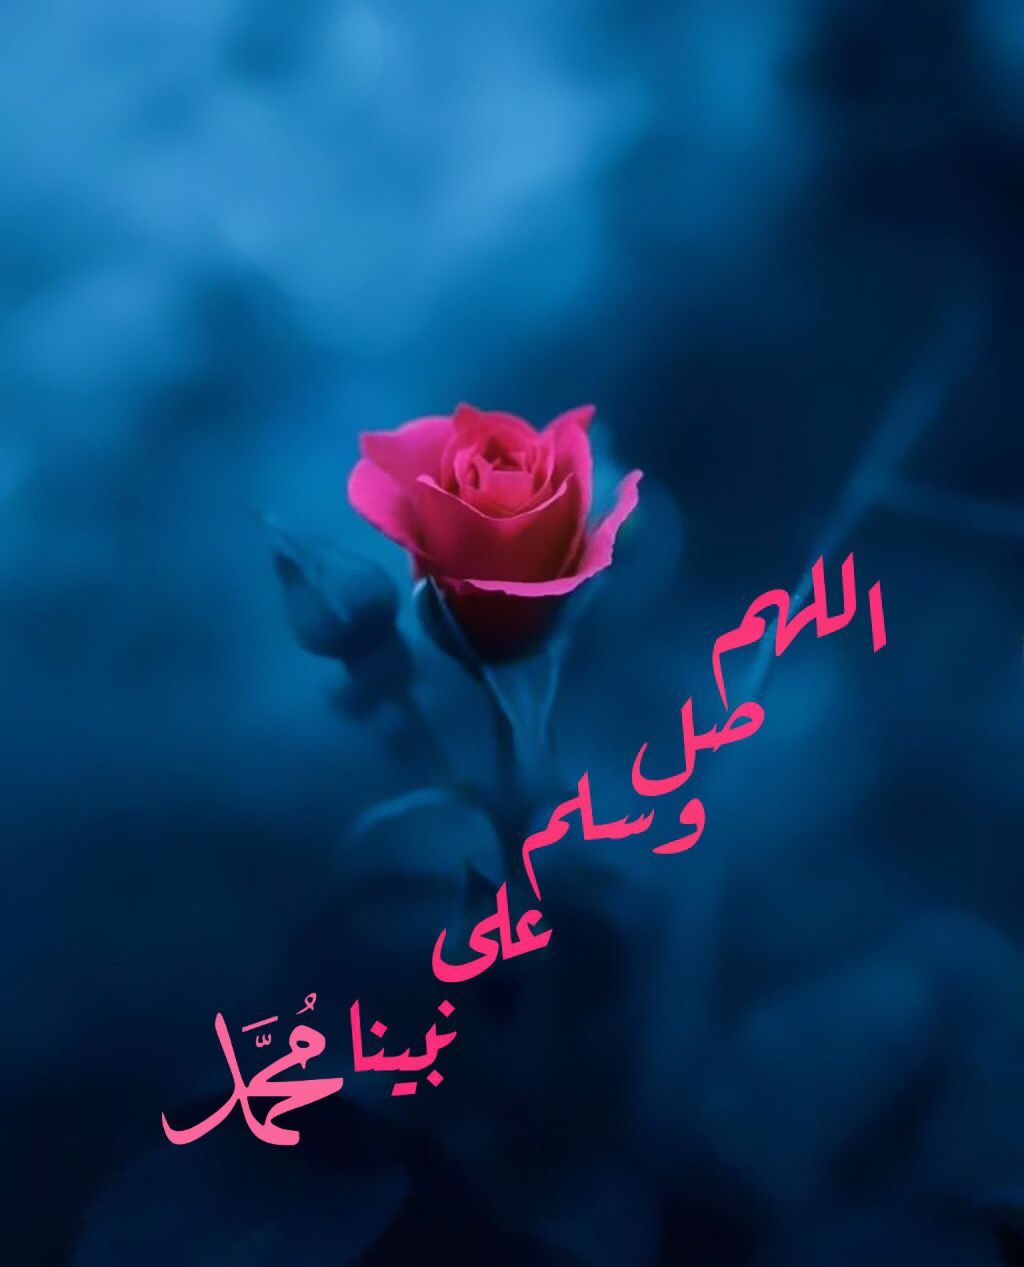 Pin By ميسم القيام On Prophet Saw Greeting Islamic Images Islamic Quotes Arabic Quotes